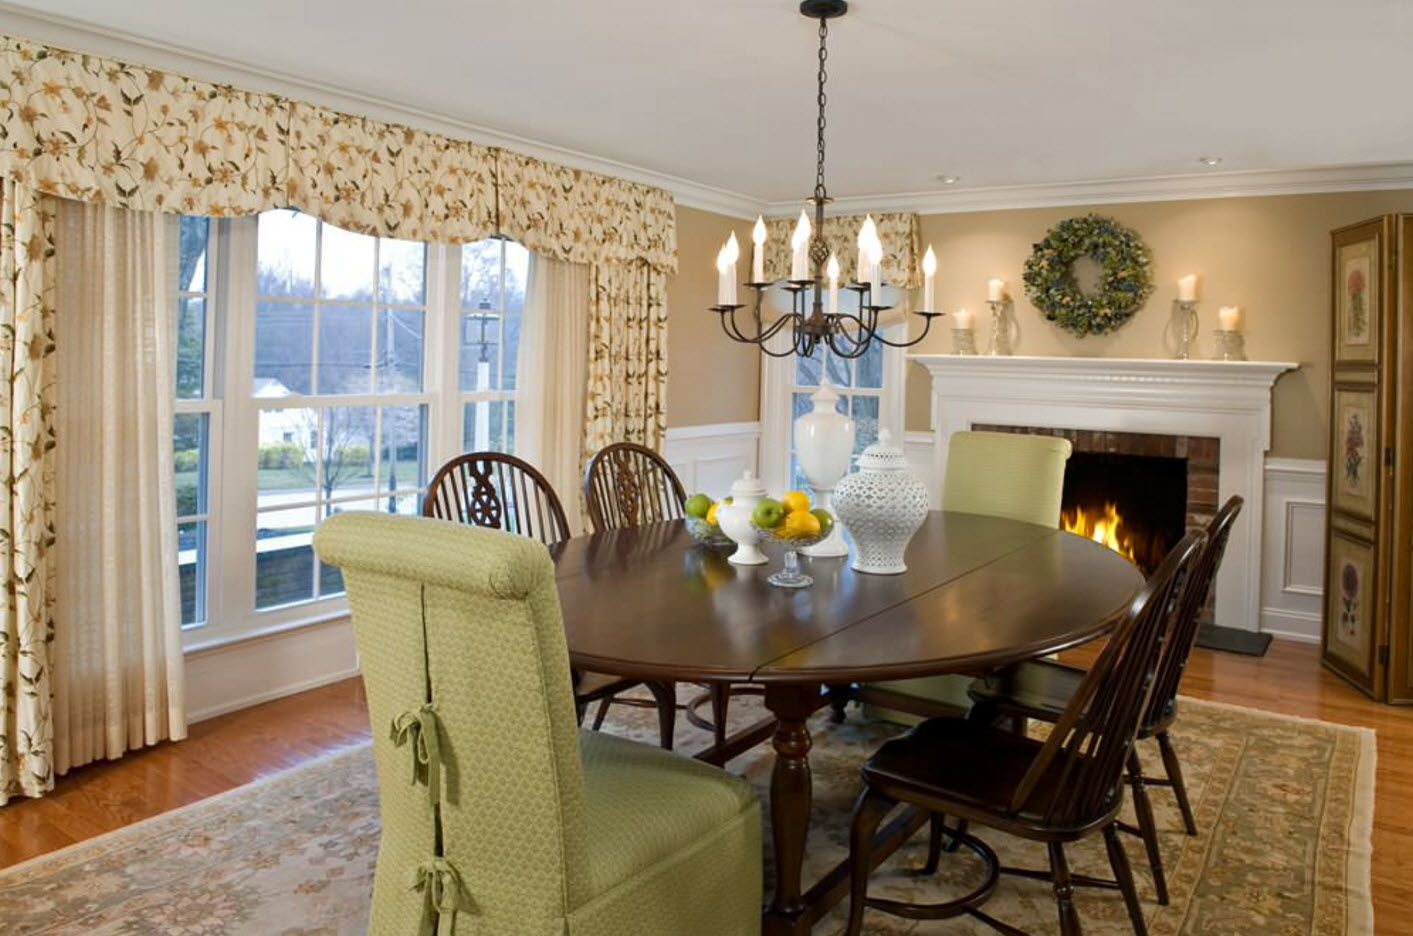 Dining Zone Table and Chairs: Practical and Aesthetic Composition. Classic style with natural color scheme